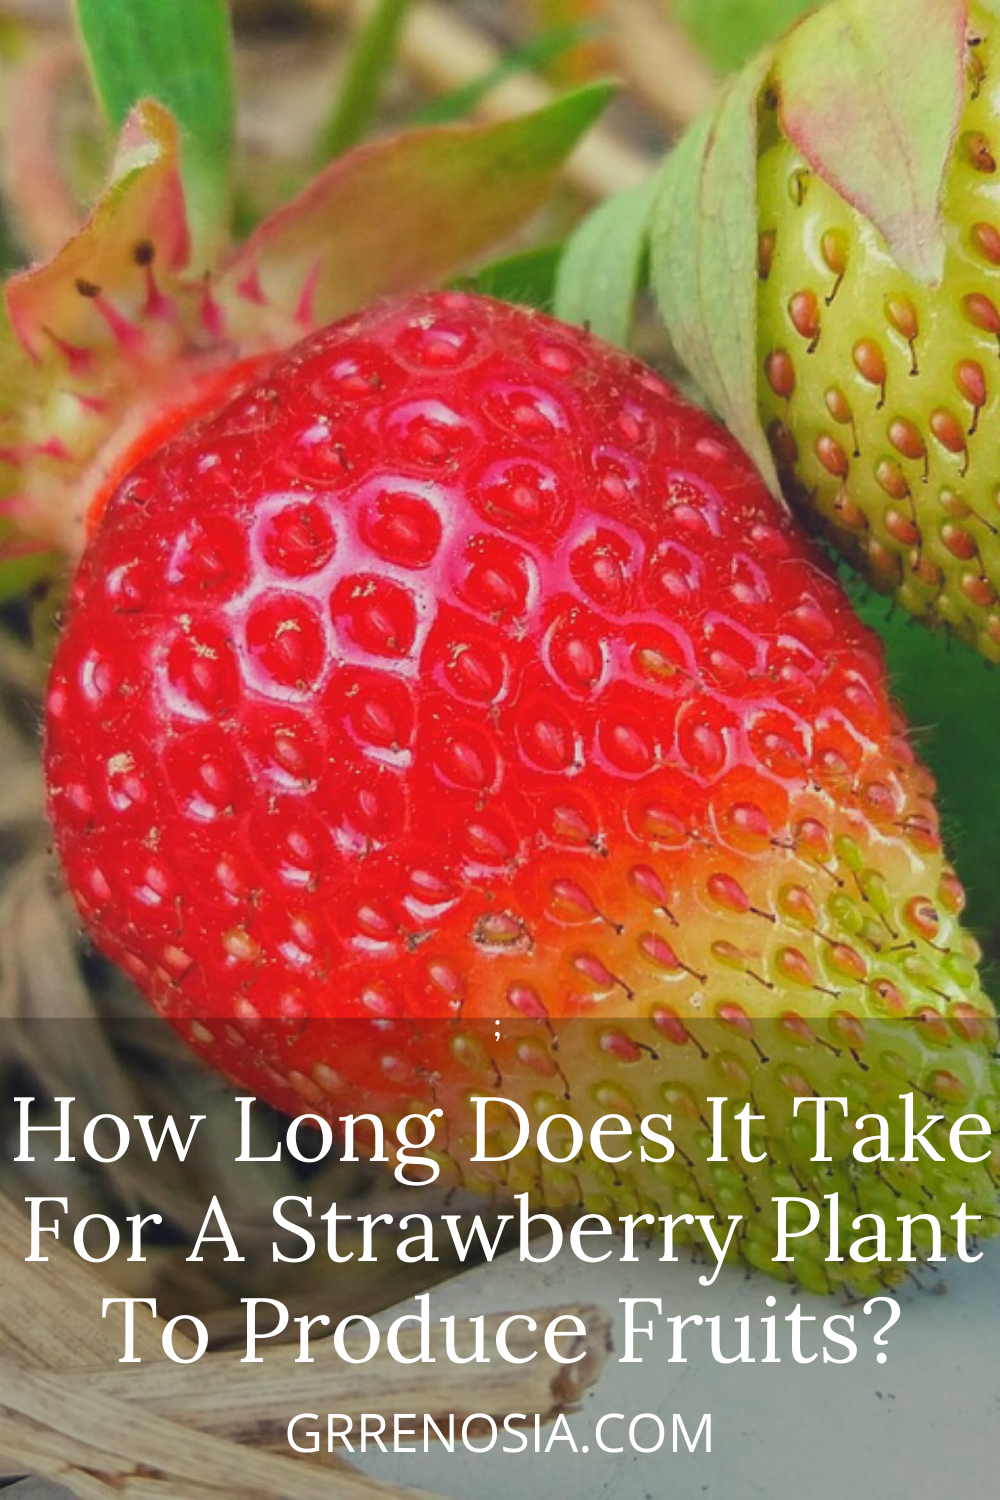 How Long Does It Take For A Strawberry Plant To Produce Fruits In 2020 Strawberry Plants Strawberry Plant Care Strawberry